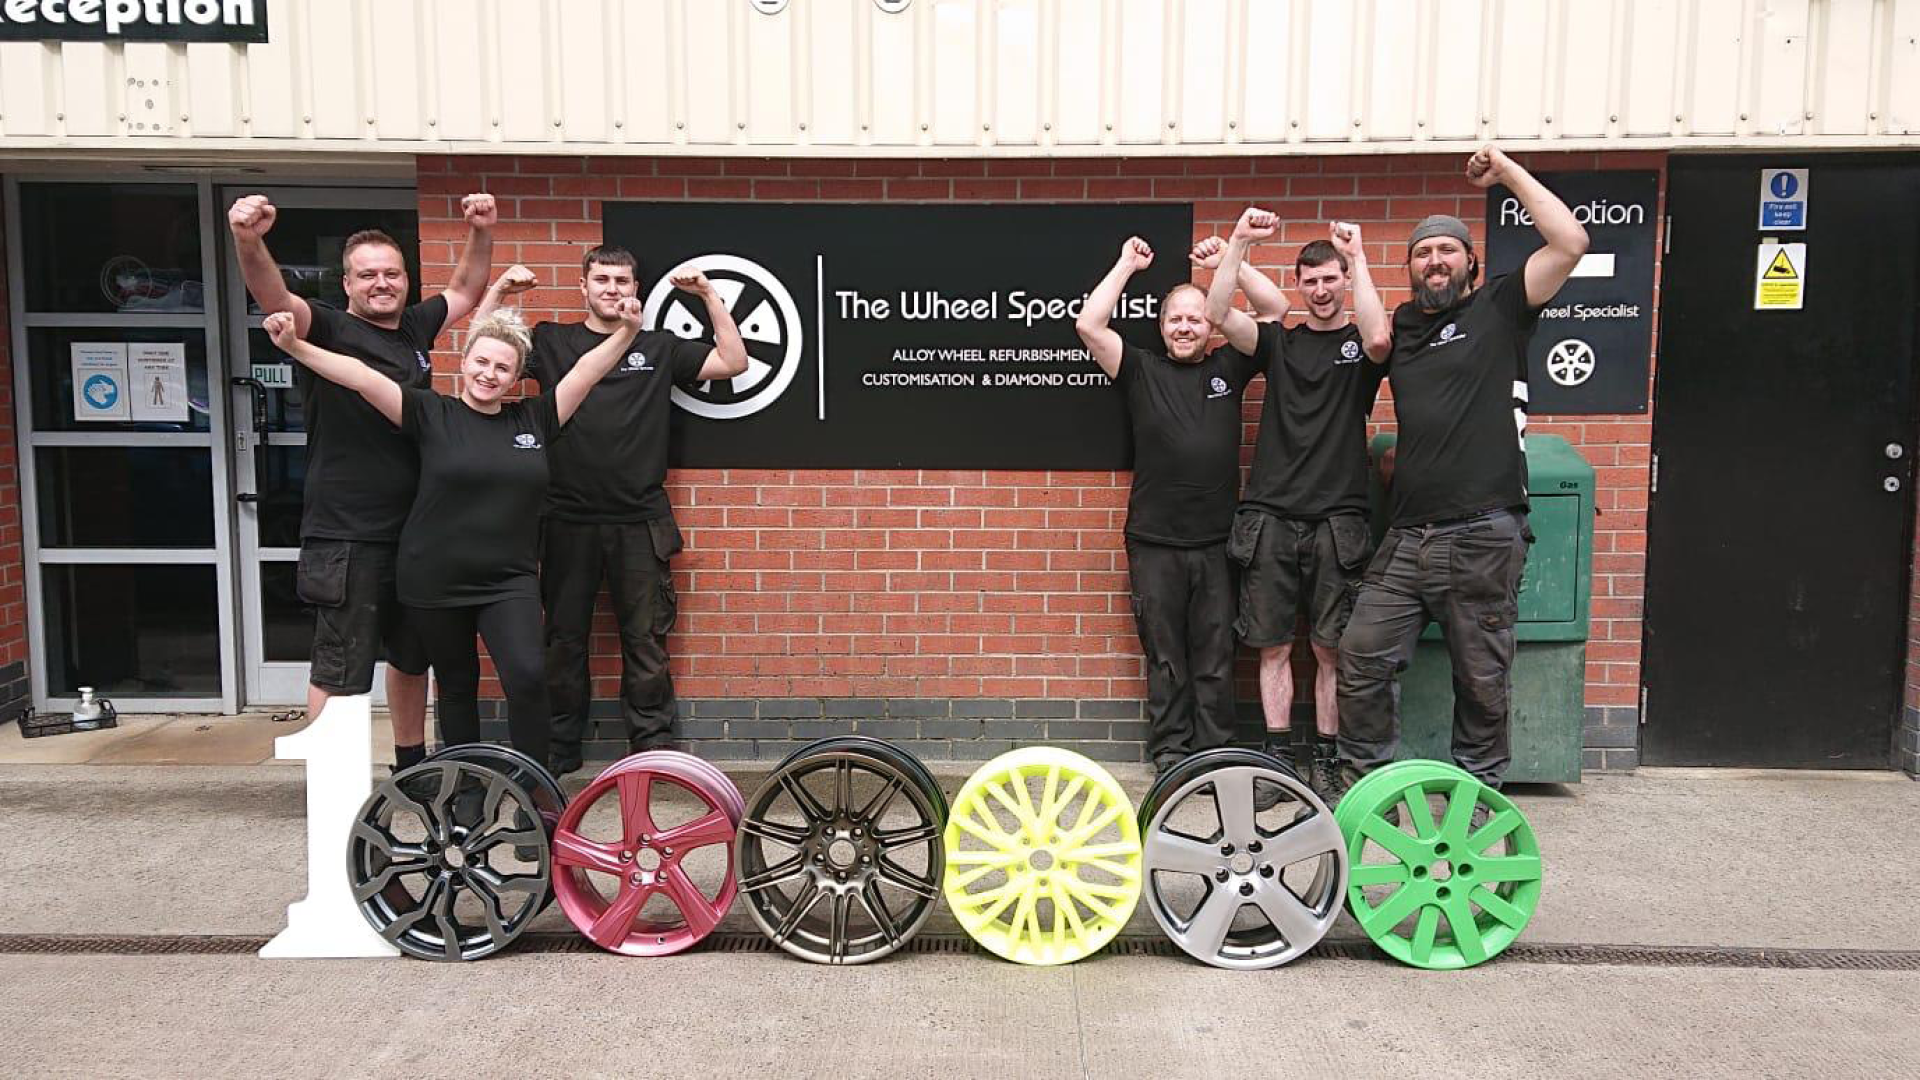 A one and six zeroes for The Wheel Specialist's heroes